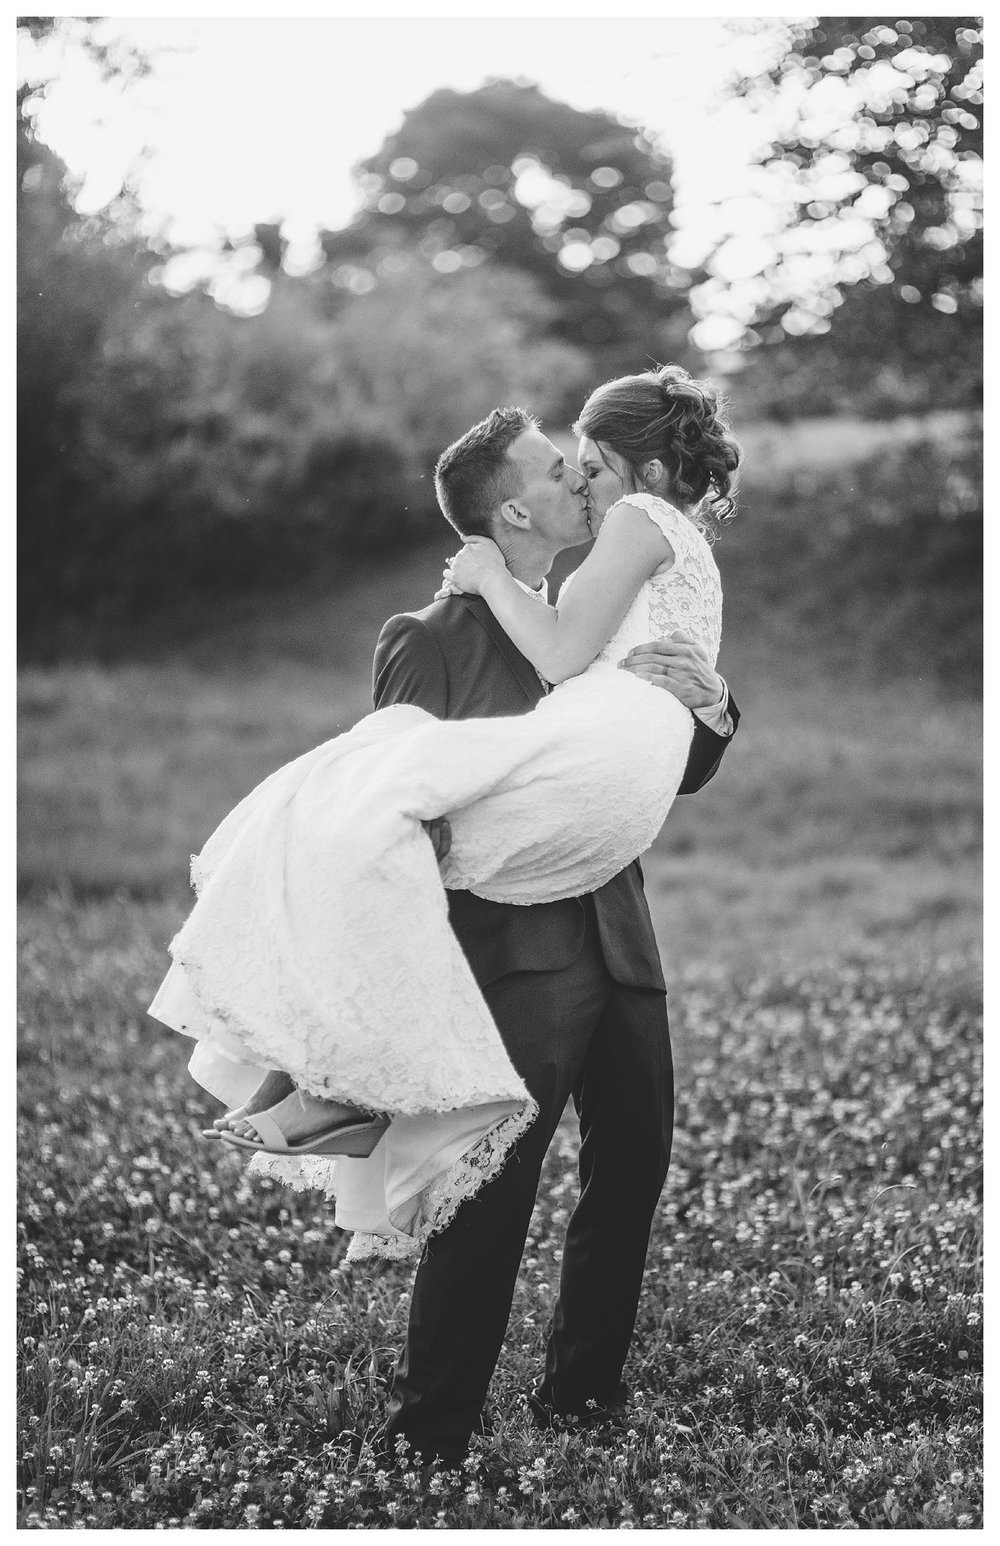 richwood-on-the-river-everleigh-photography-roby-and-tabitha-foree-wedding-87